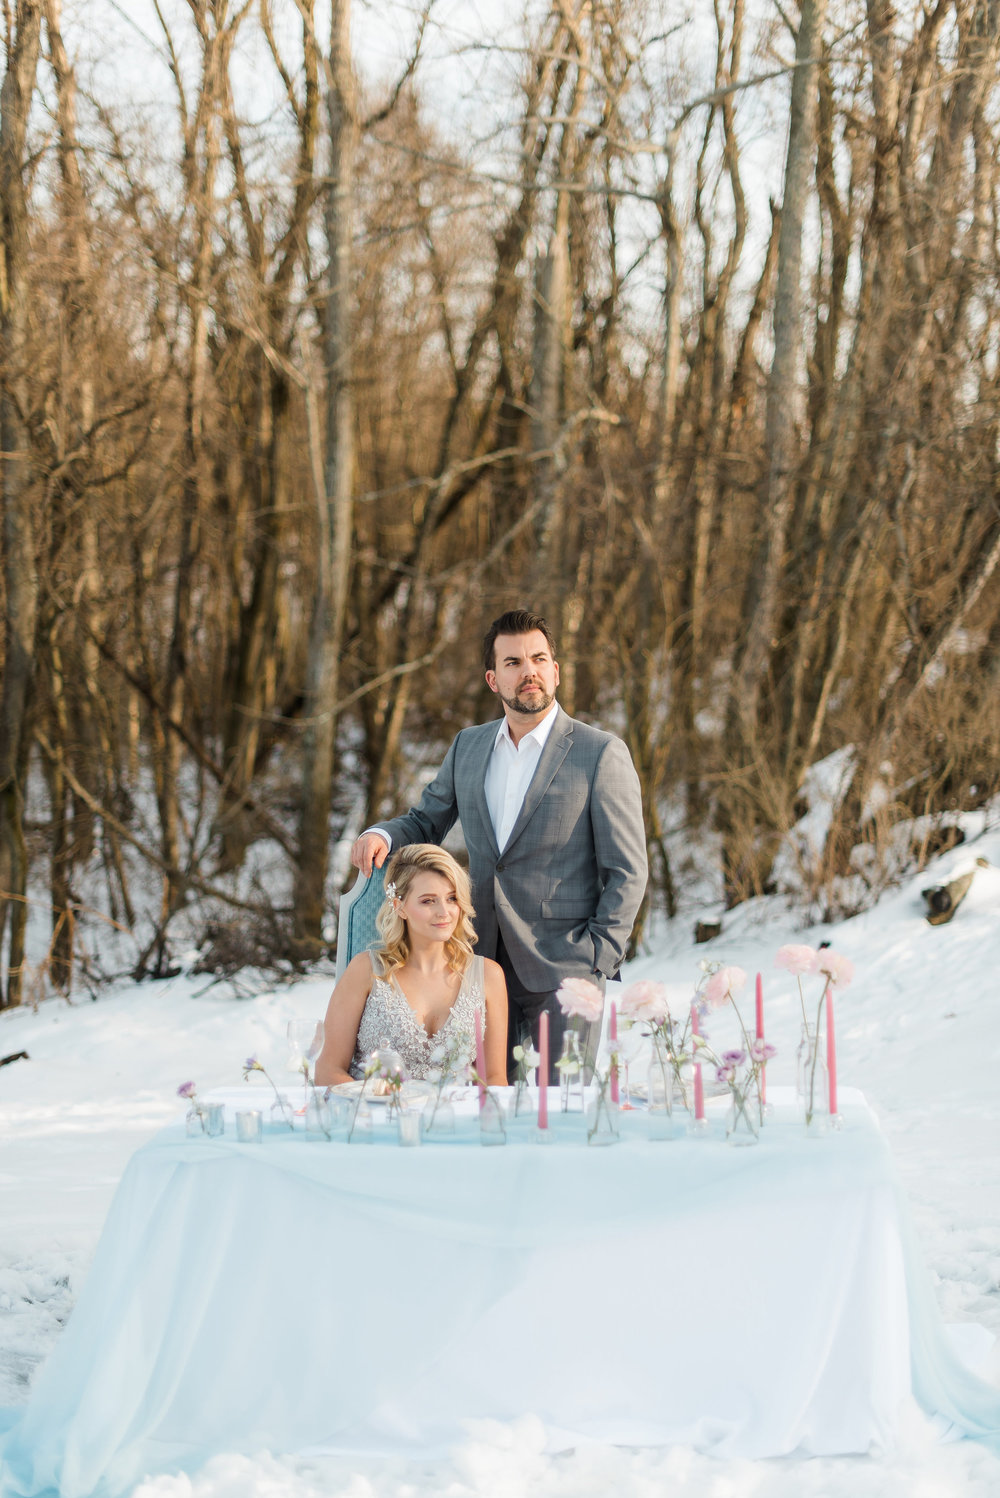 winter-romantic-snowy-pastel-pennsylvania-pittsburgh-wedding-styled-shoot-0013.jpg